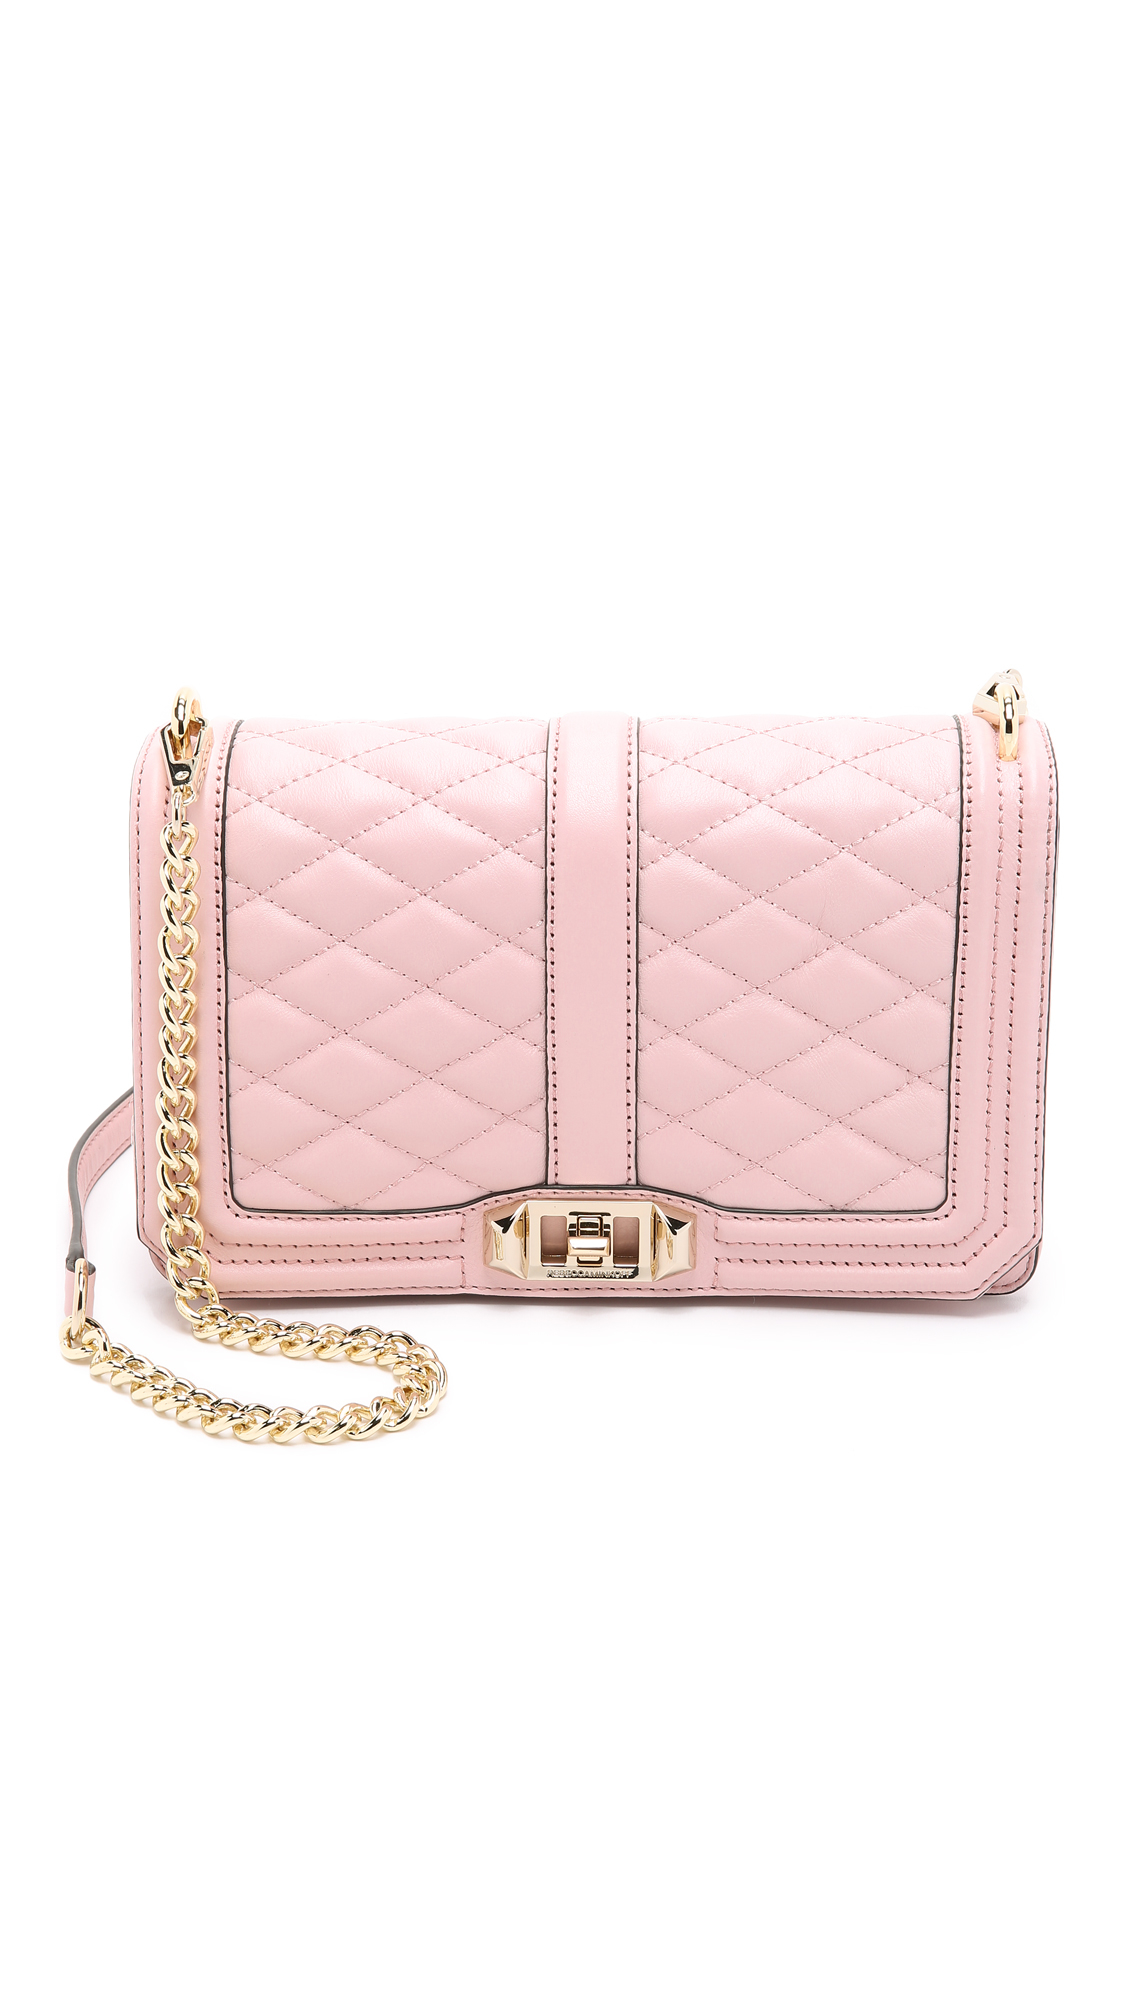 Lyst - Rebecca Minkoff Love Cross Body Bag in Pink 91fc02b3b1b8